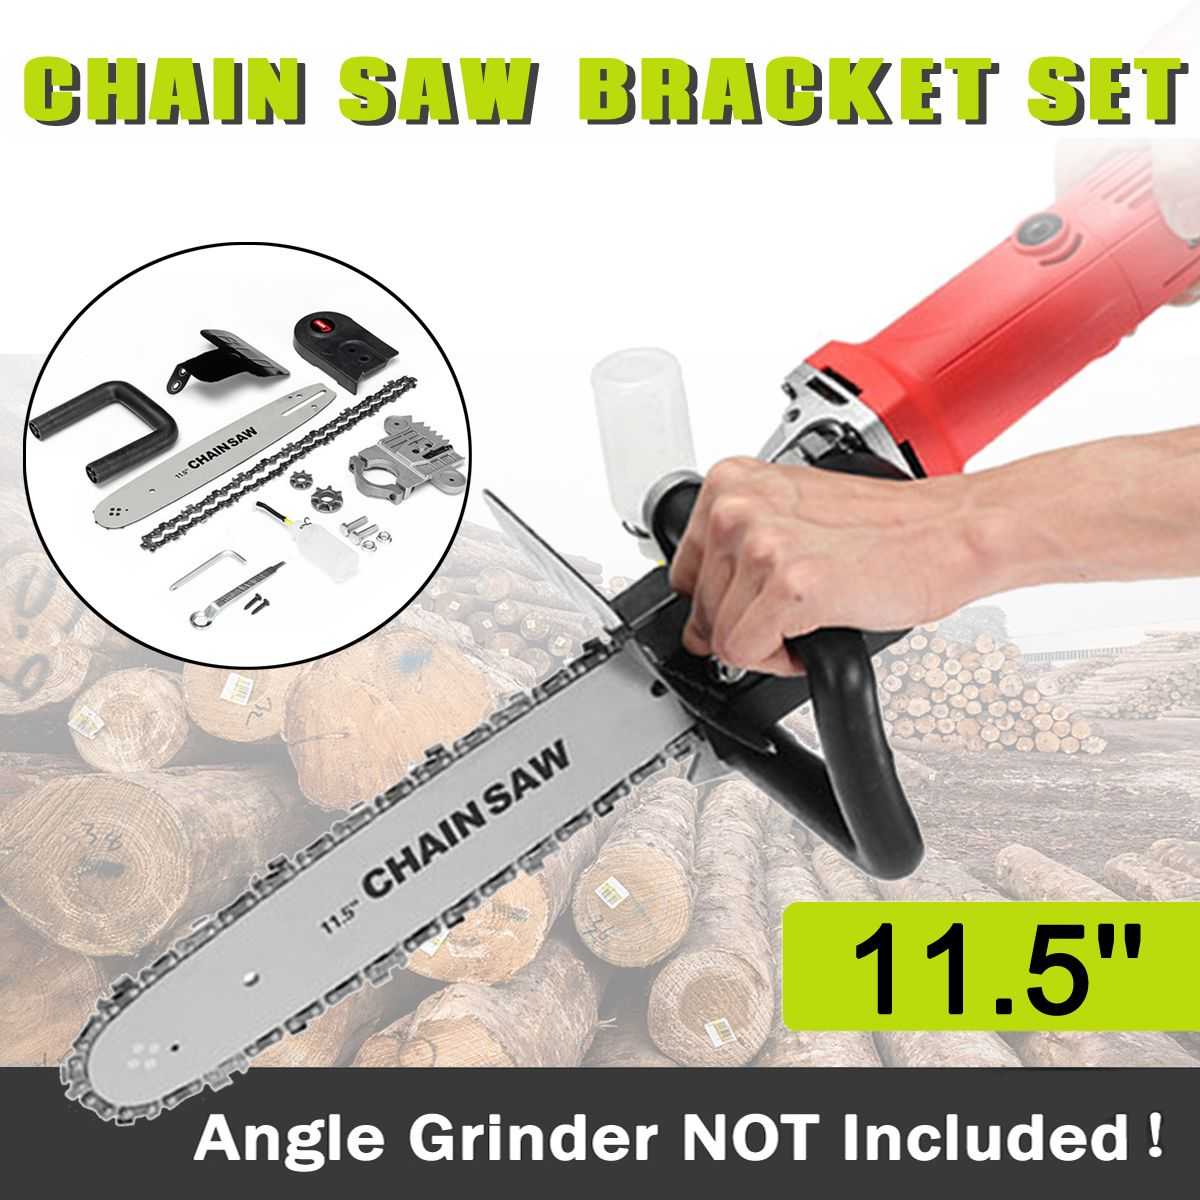 Drillpro Upgrade 11.5 Inch Chainsaw Bracket Changed 100 125 150 <font><b>Angle</b></font> Grinder M10/M14 Into Chain Saw Woodworking Tool